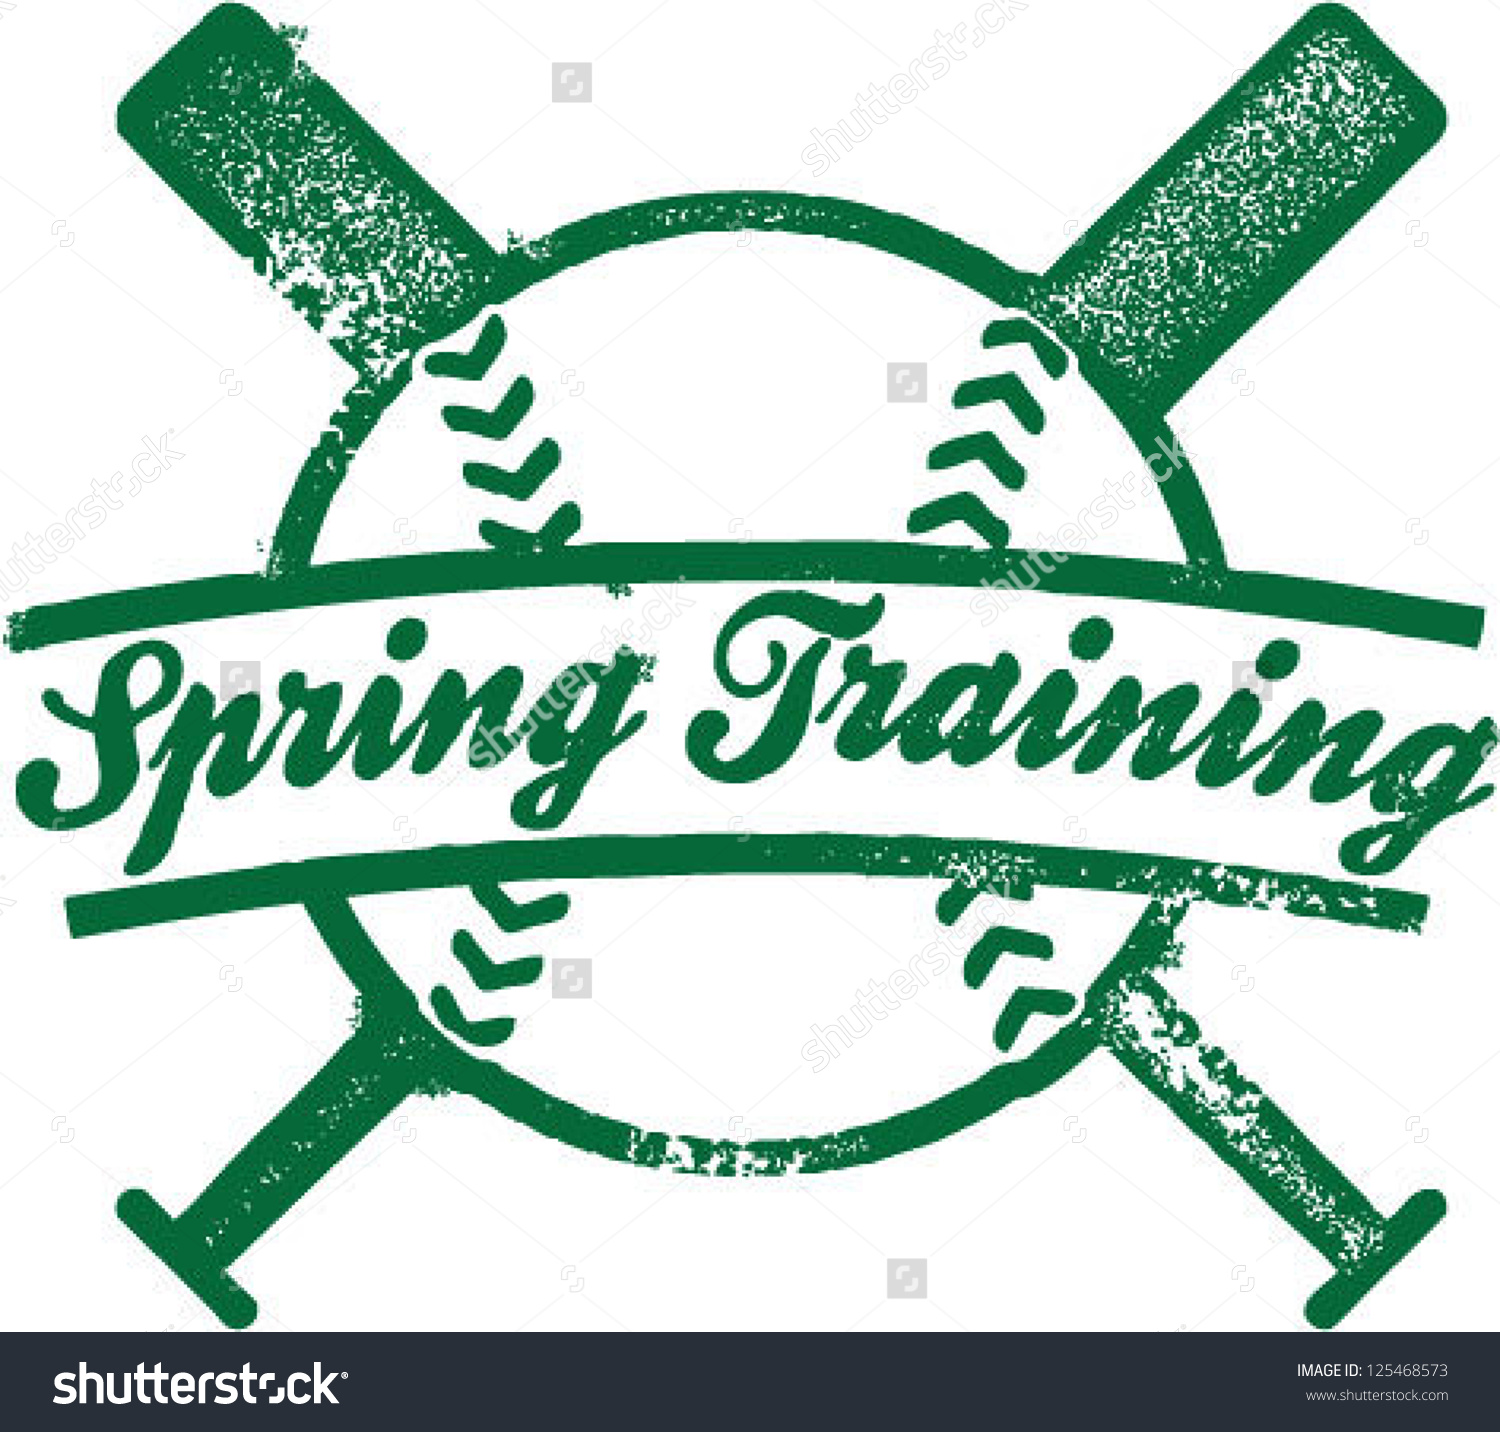 "Spring Training - ""Making The Team"" - (Ben Stuckey March 3rd)"